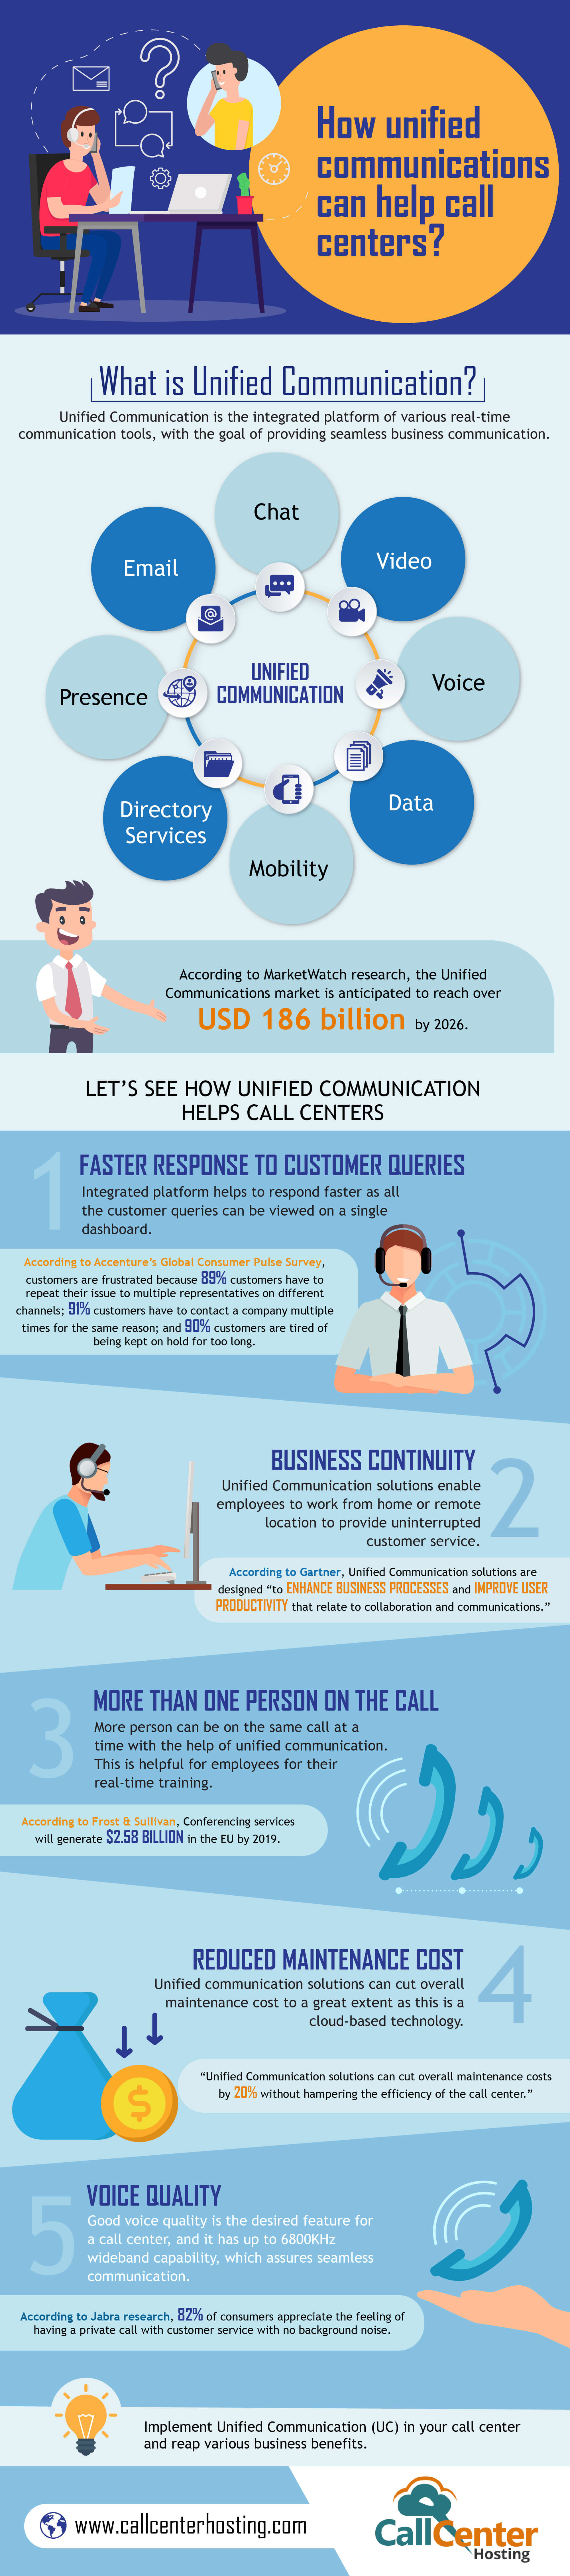 Infographic How Unified Communications Help Call Centers